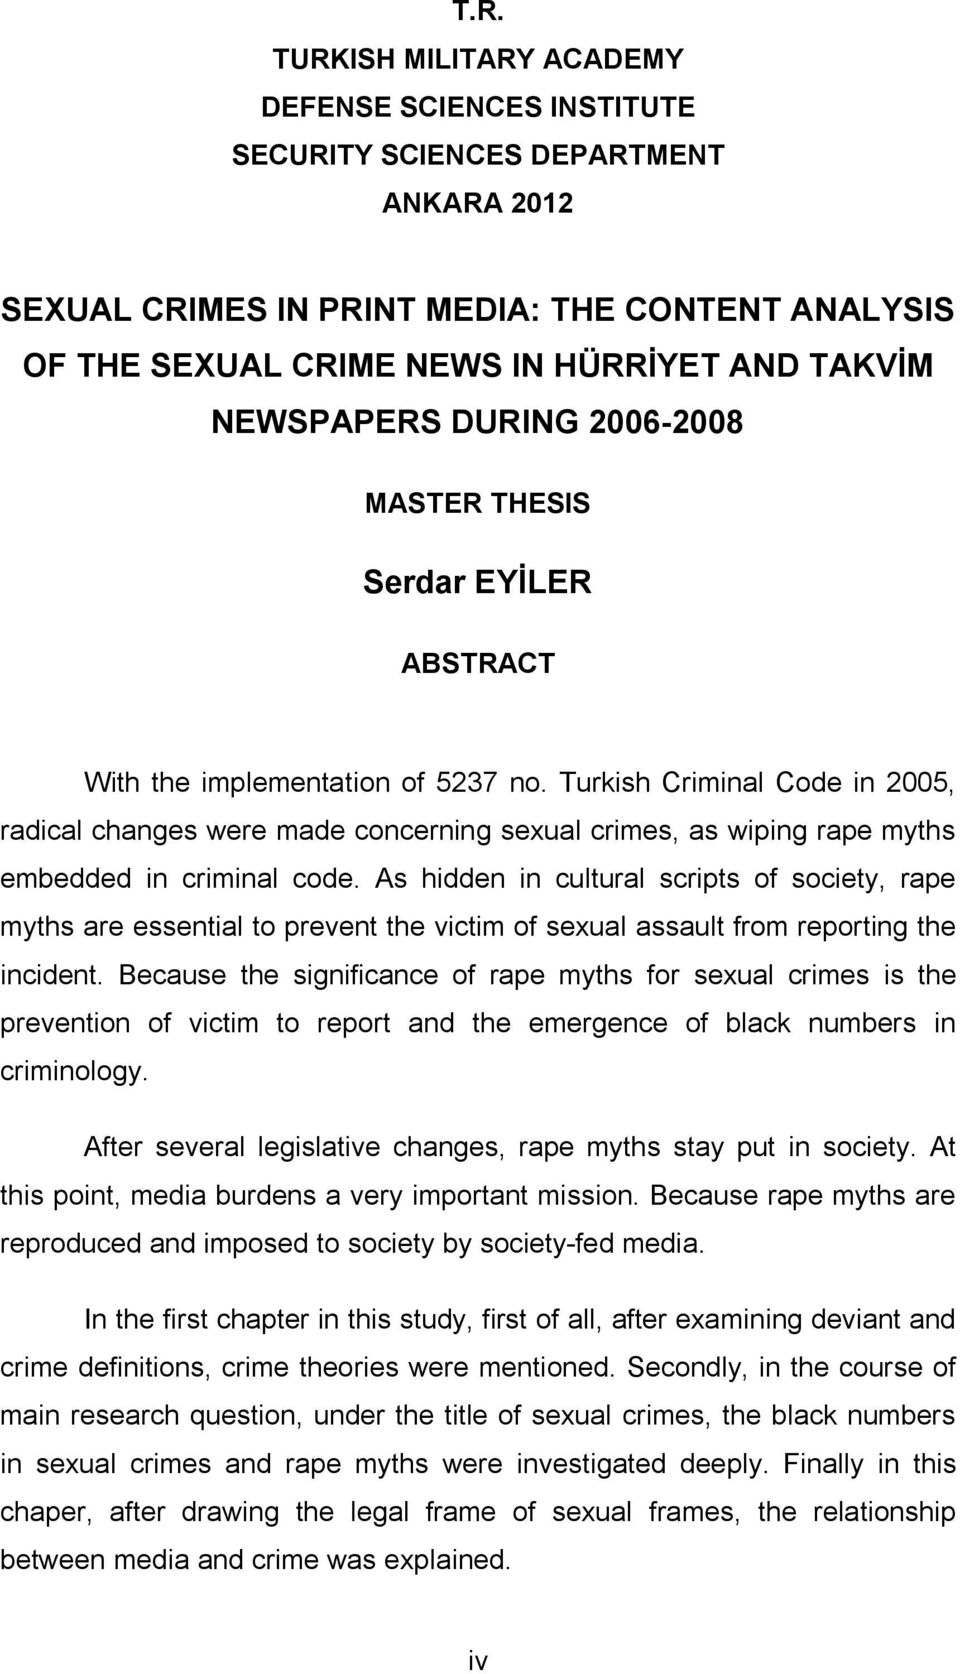 Turkish Criminal Code in 2005, radical changes were made concerning sexual crimes, as wiping rape myths embedded in criminal code.